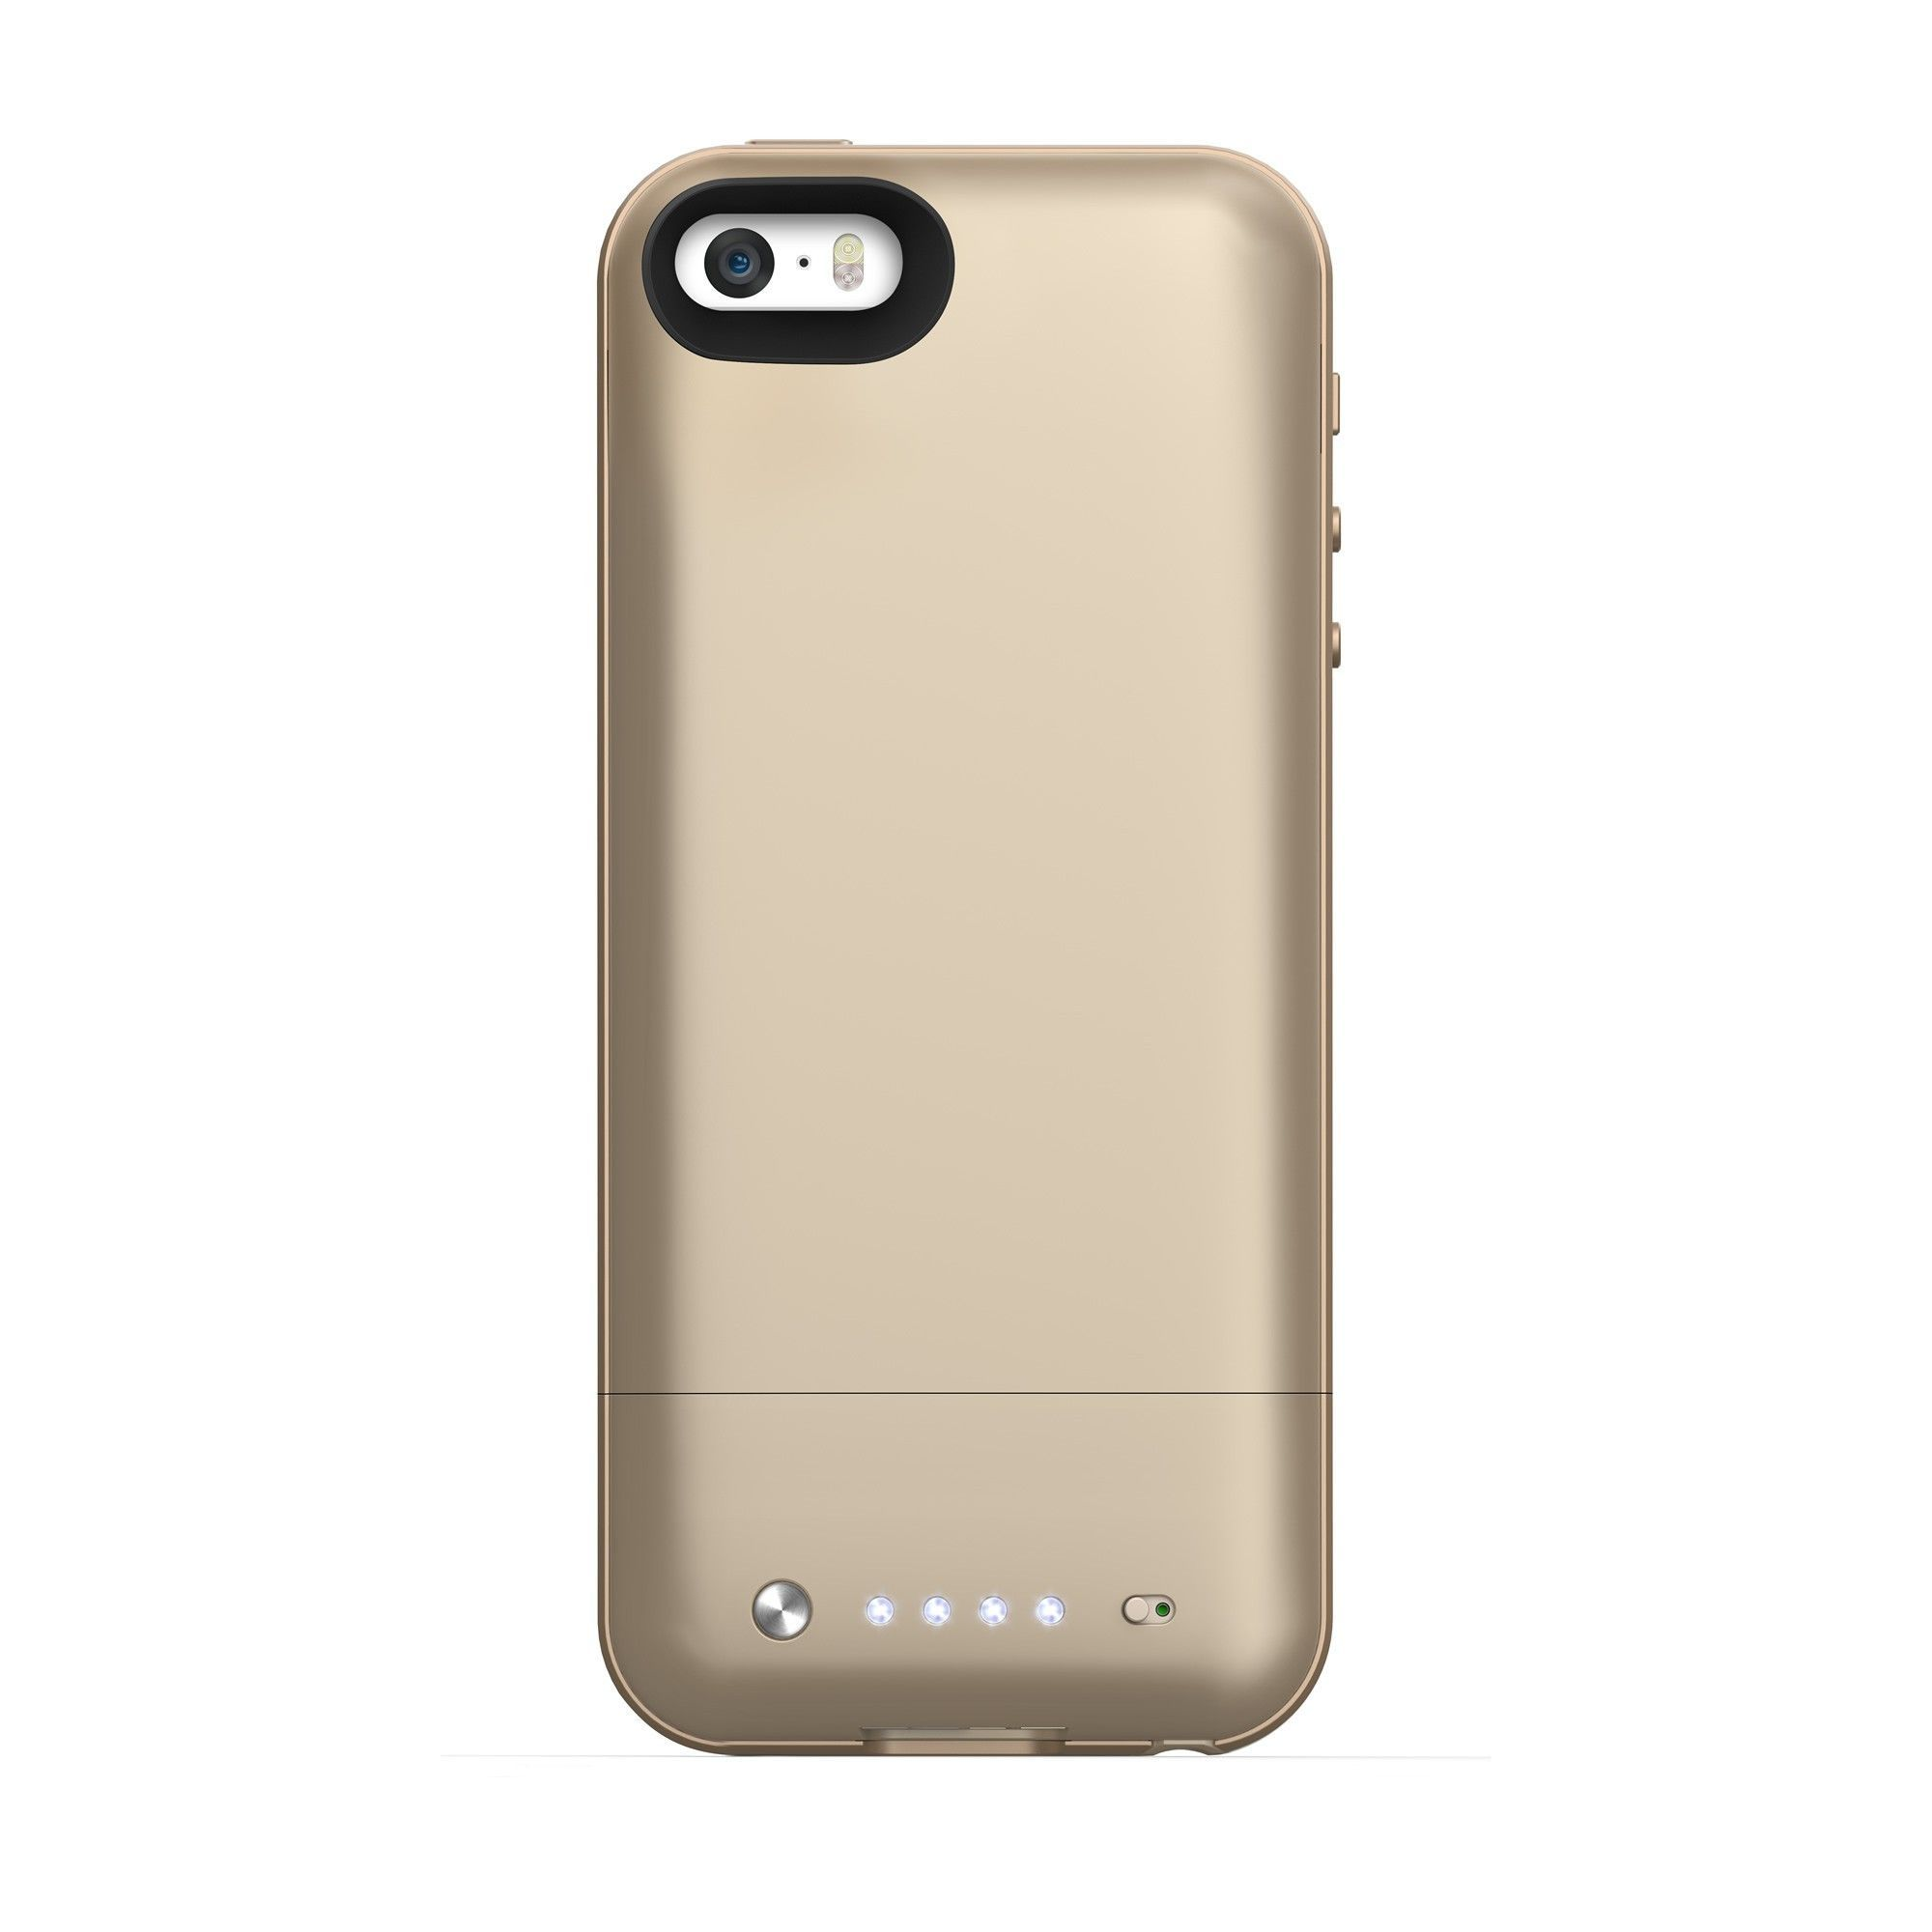 mophie Space Pack 16GB for iPhone 5/5S Iphone, Mophie